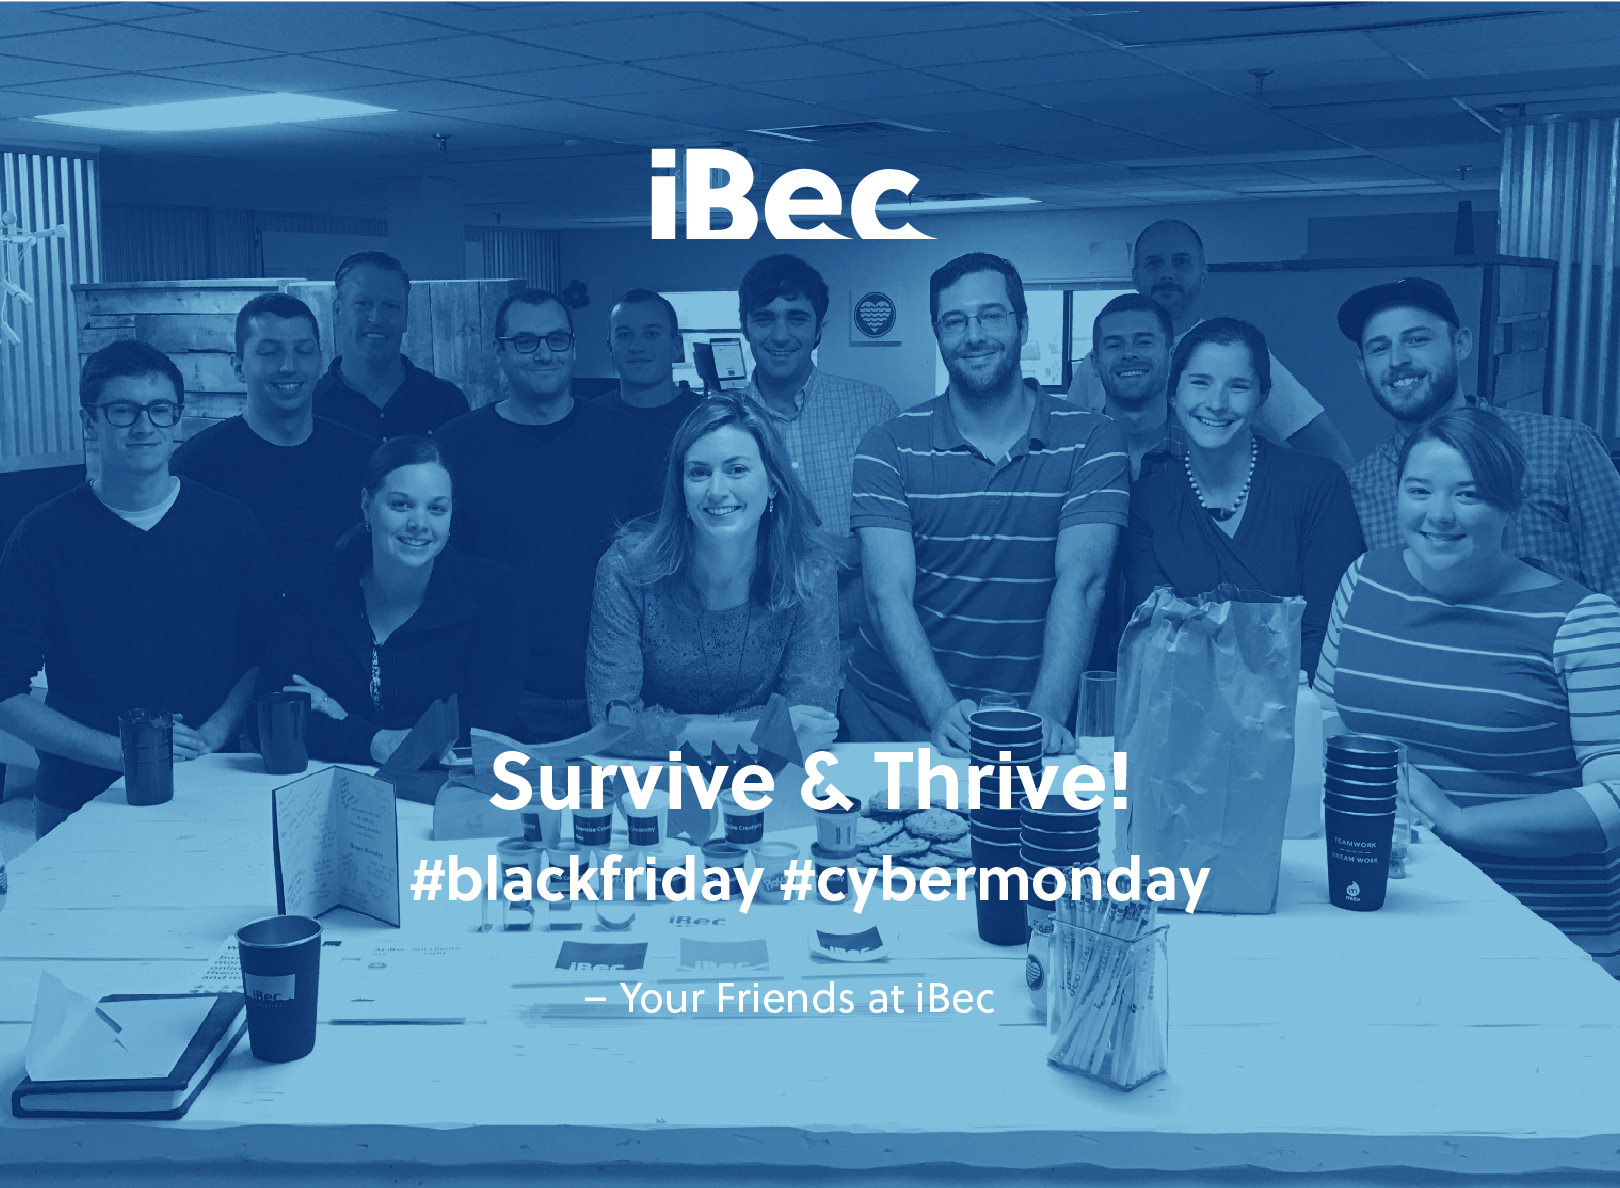 iBec team gathered around a white table, facing the camera and smiling